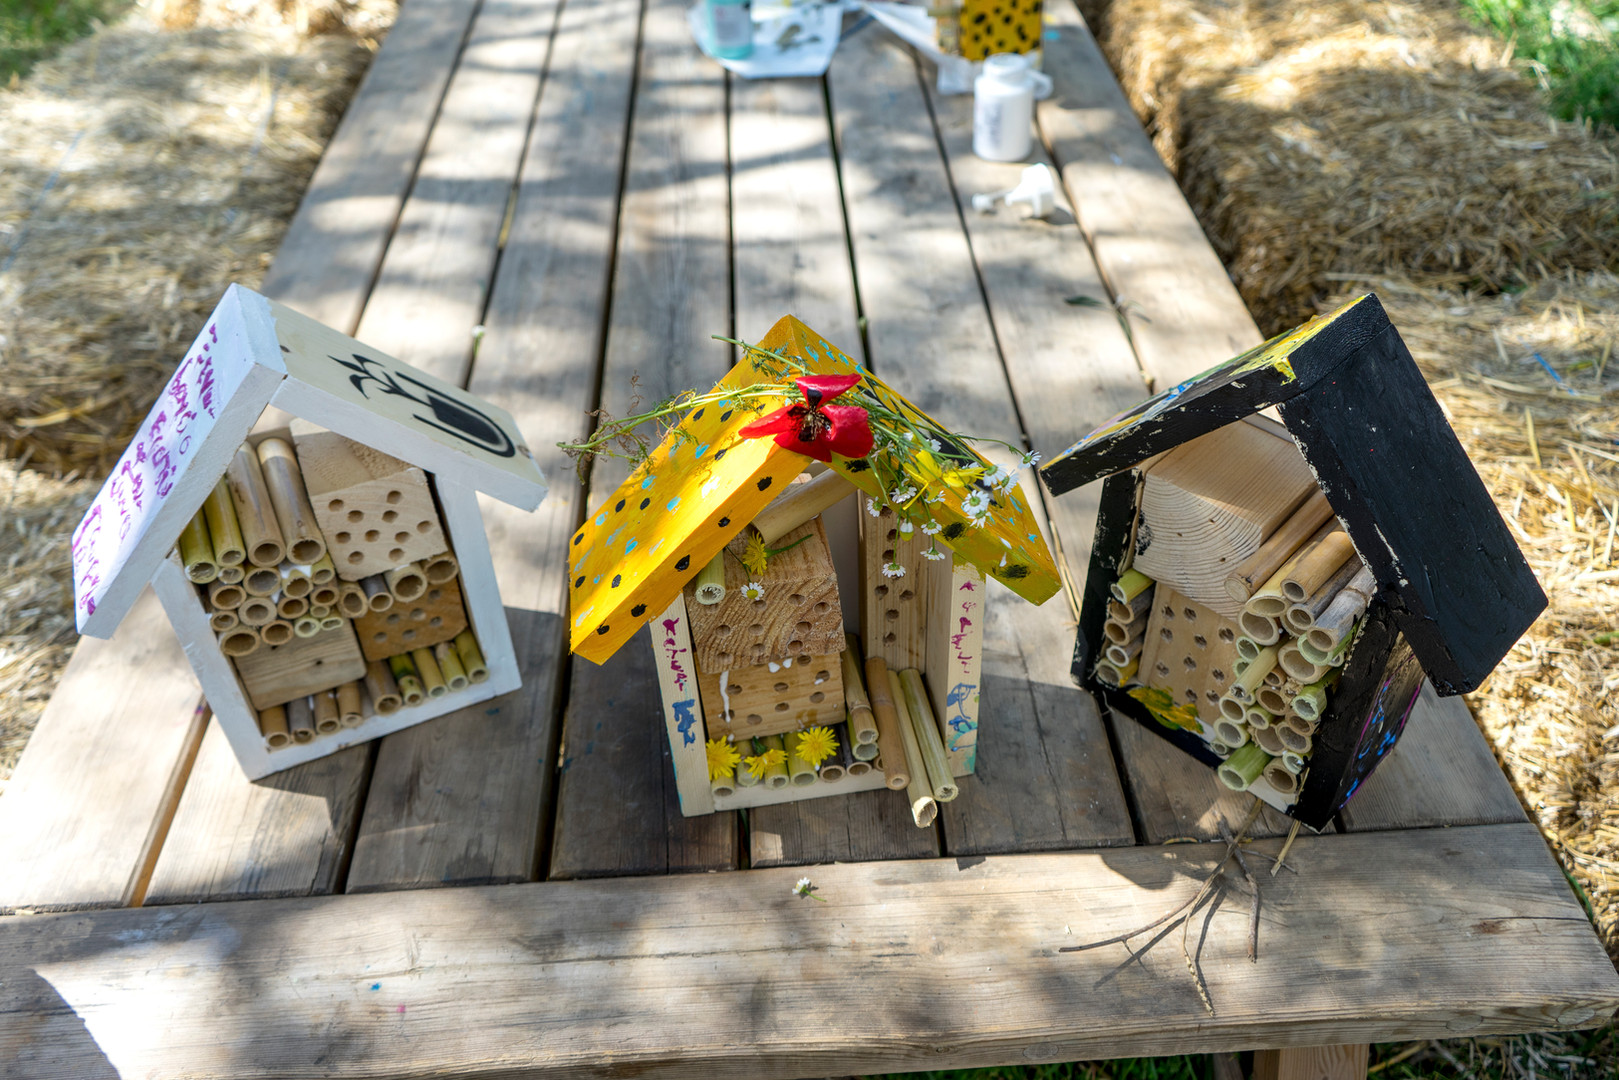 Copy of Copy of Photo 2 - Insect Hotel.j